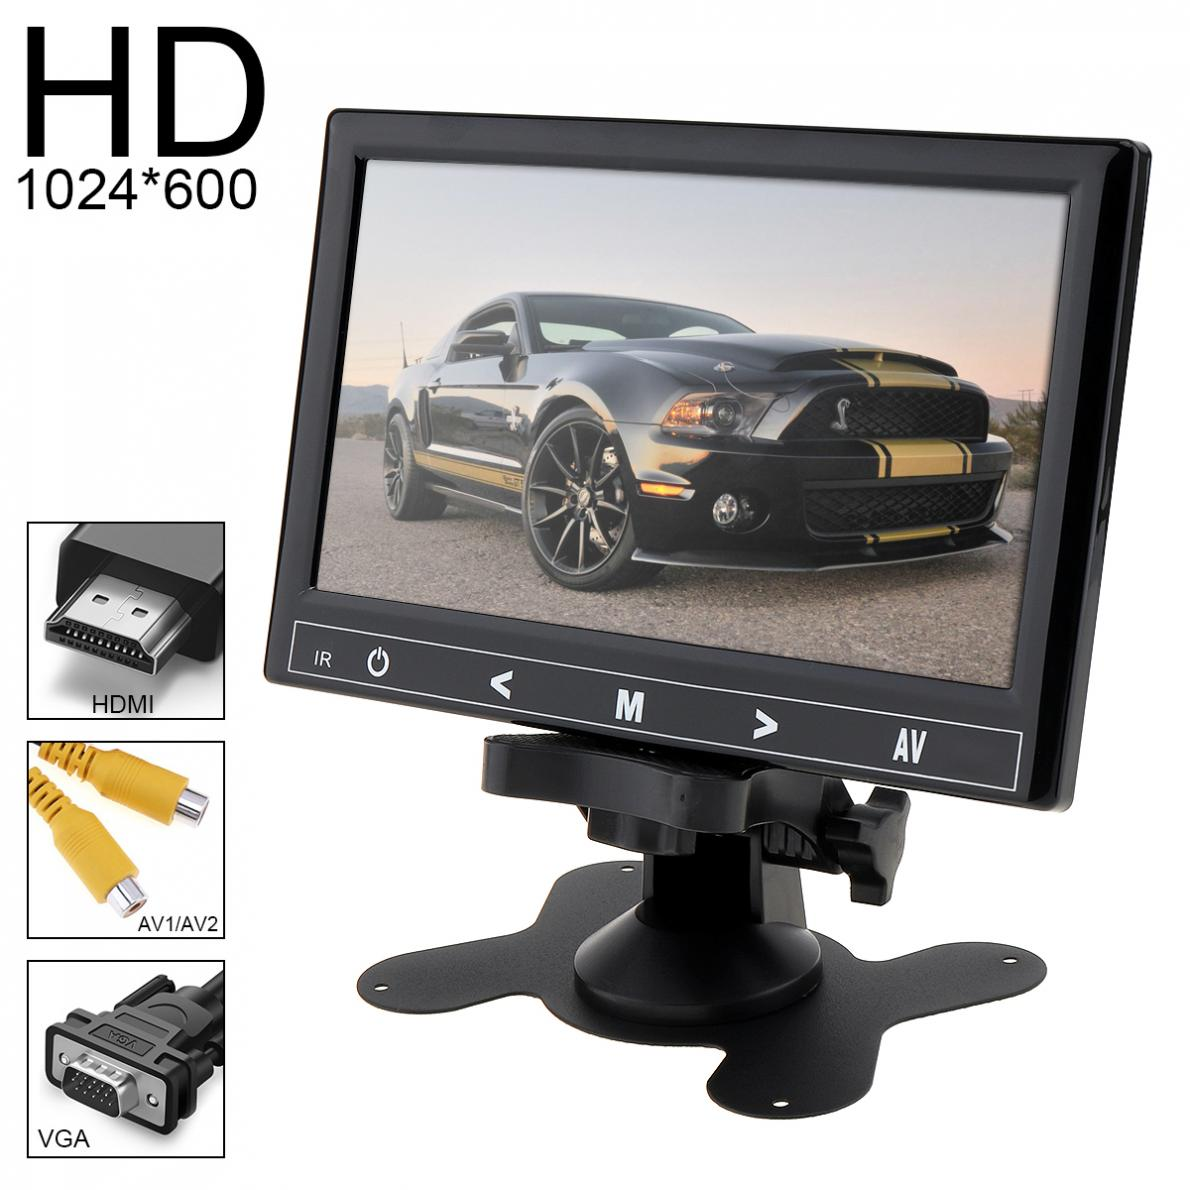 7 Inch 16:9 HD TFT LCD Color Car Rear View Monitor 2 Video Input DVD VCD Headrest Vehicle Monitor Support Audio Video HDMI VGA купить в Москве 2019